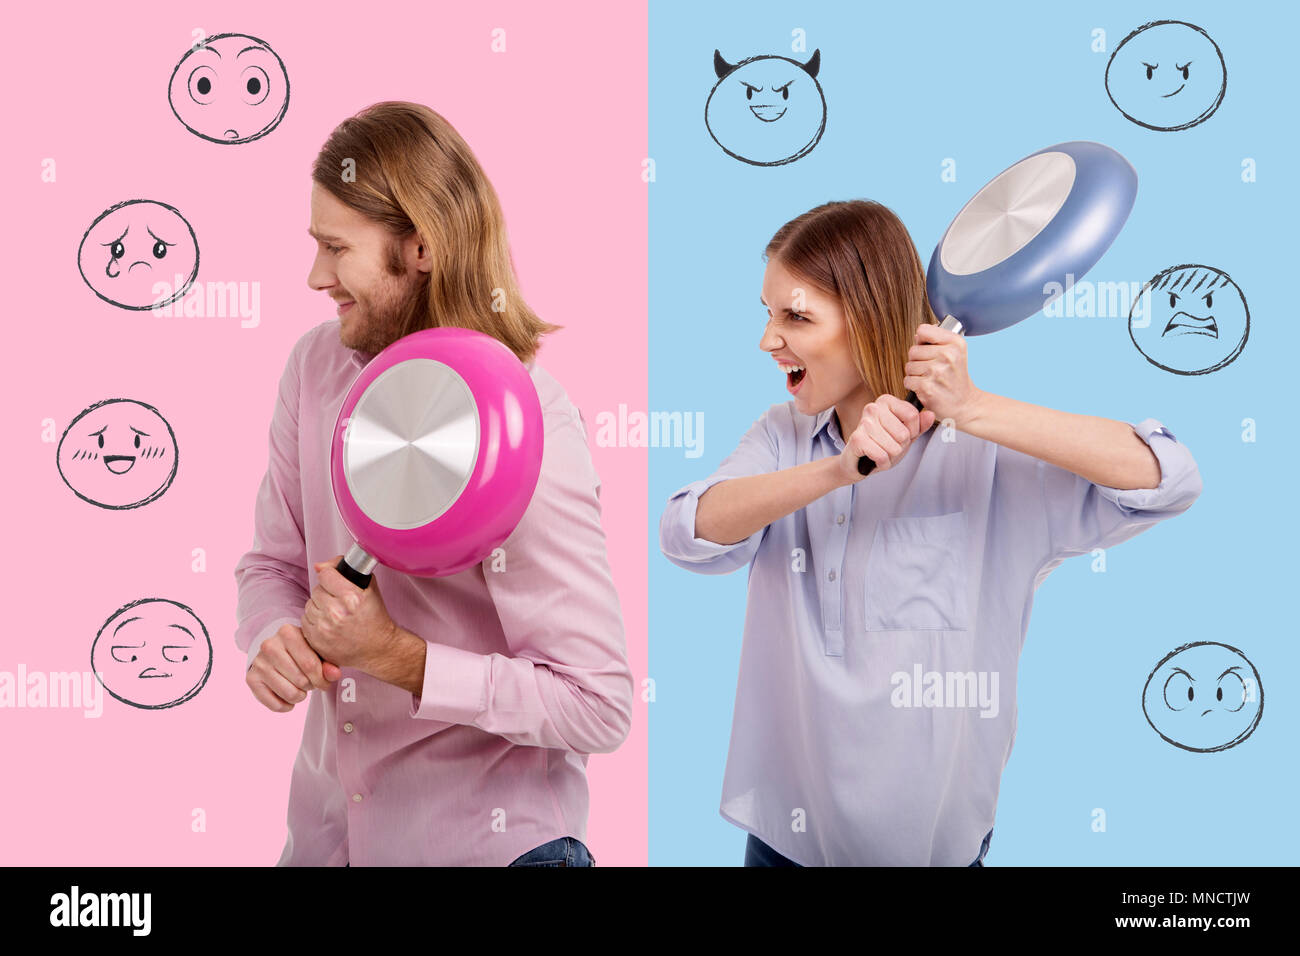 Close up of jealous girl threatening her boyfriend with a frying pan - Stock Image